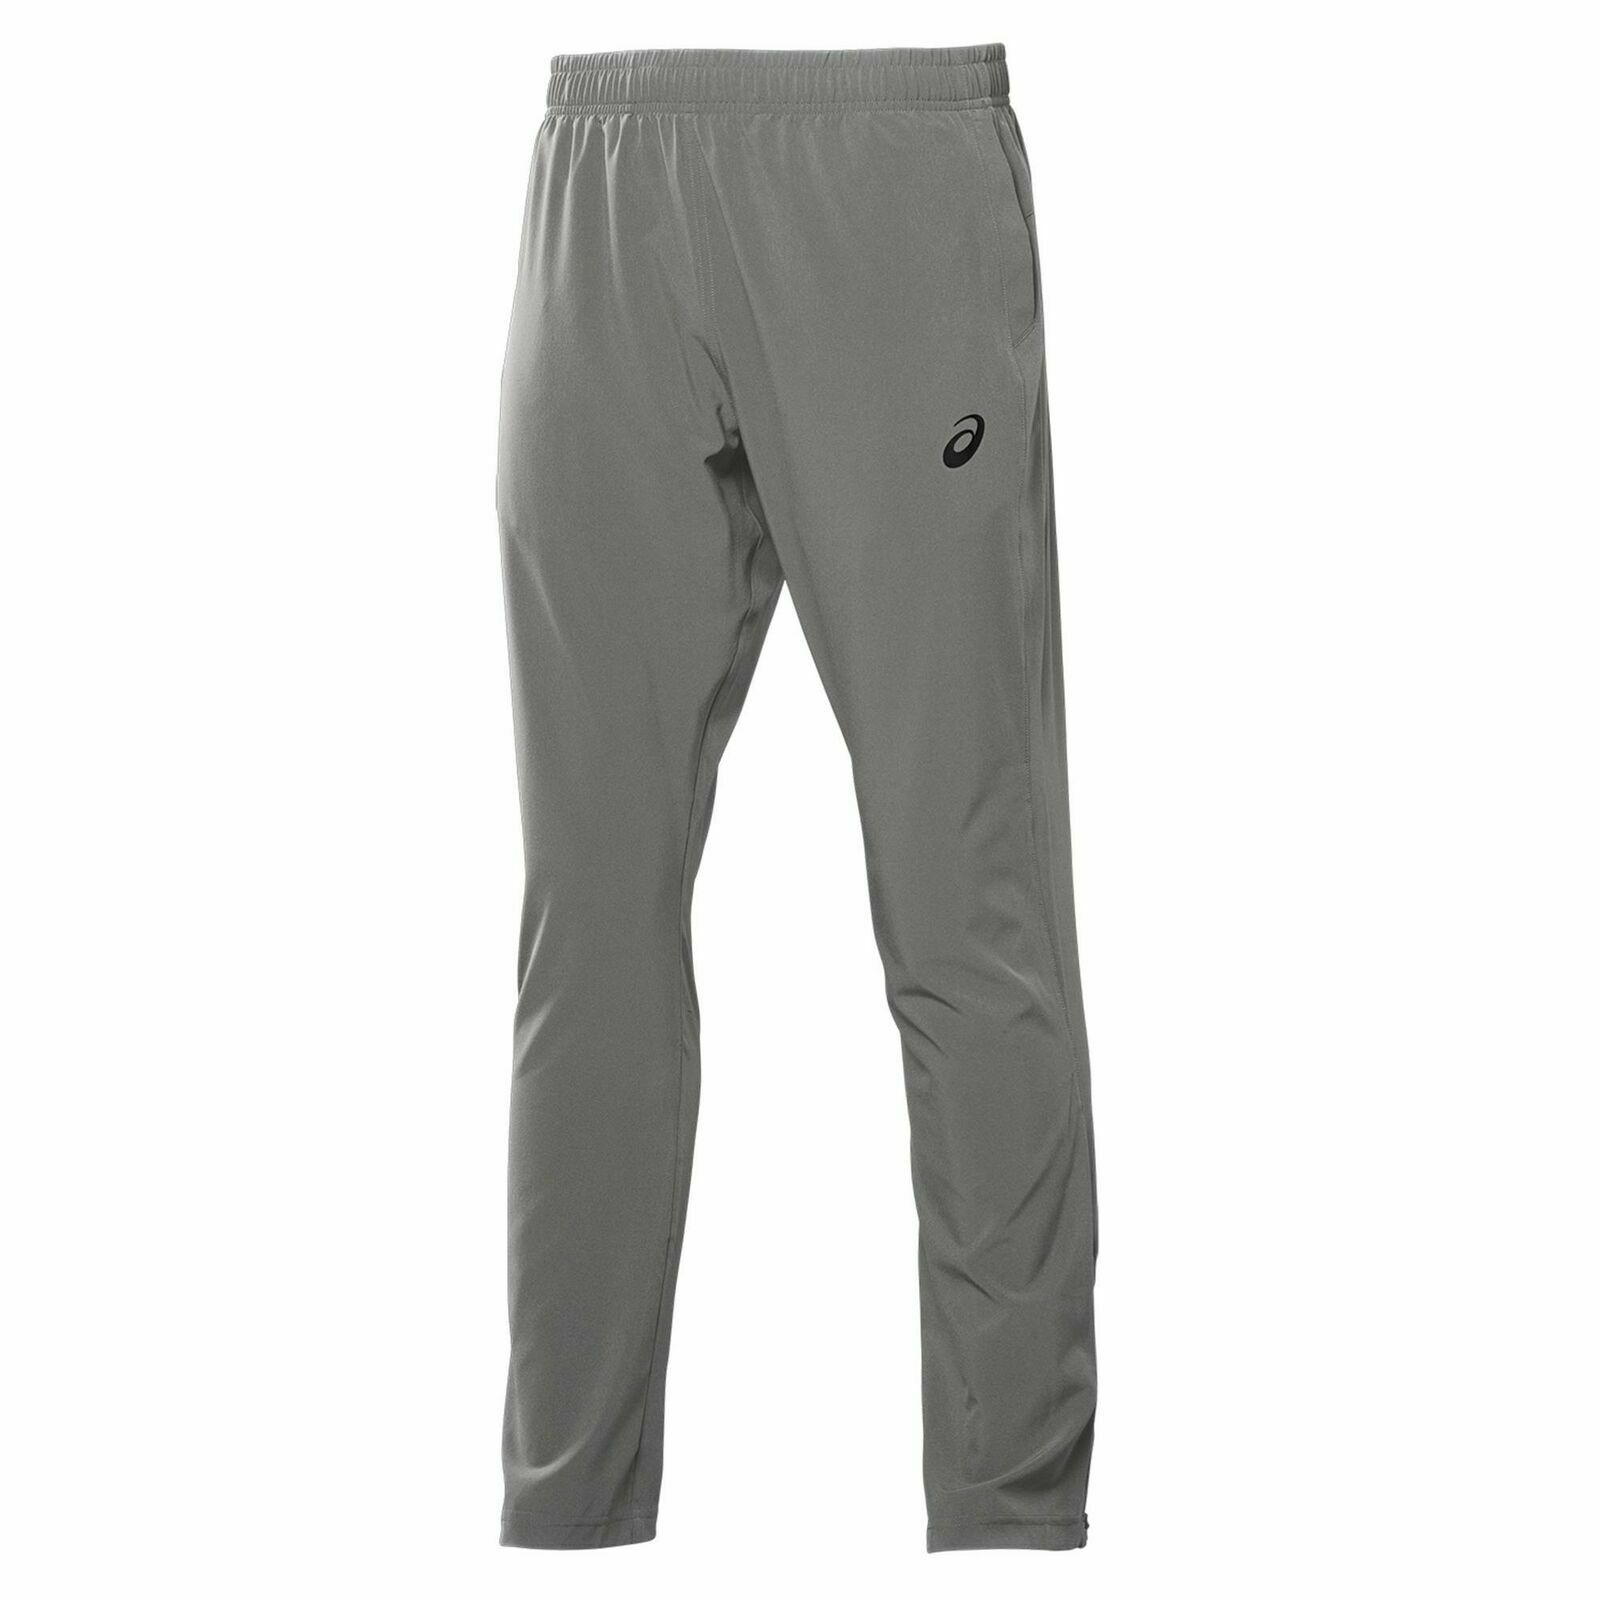 Asics Mens Woven Track Pants Casual Lounge Joggers Grey 113988 0702